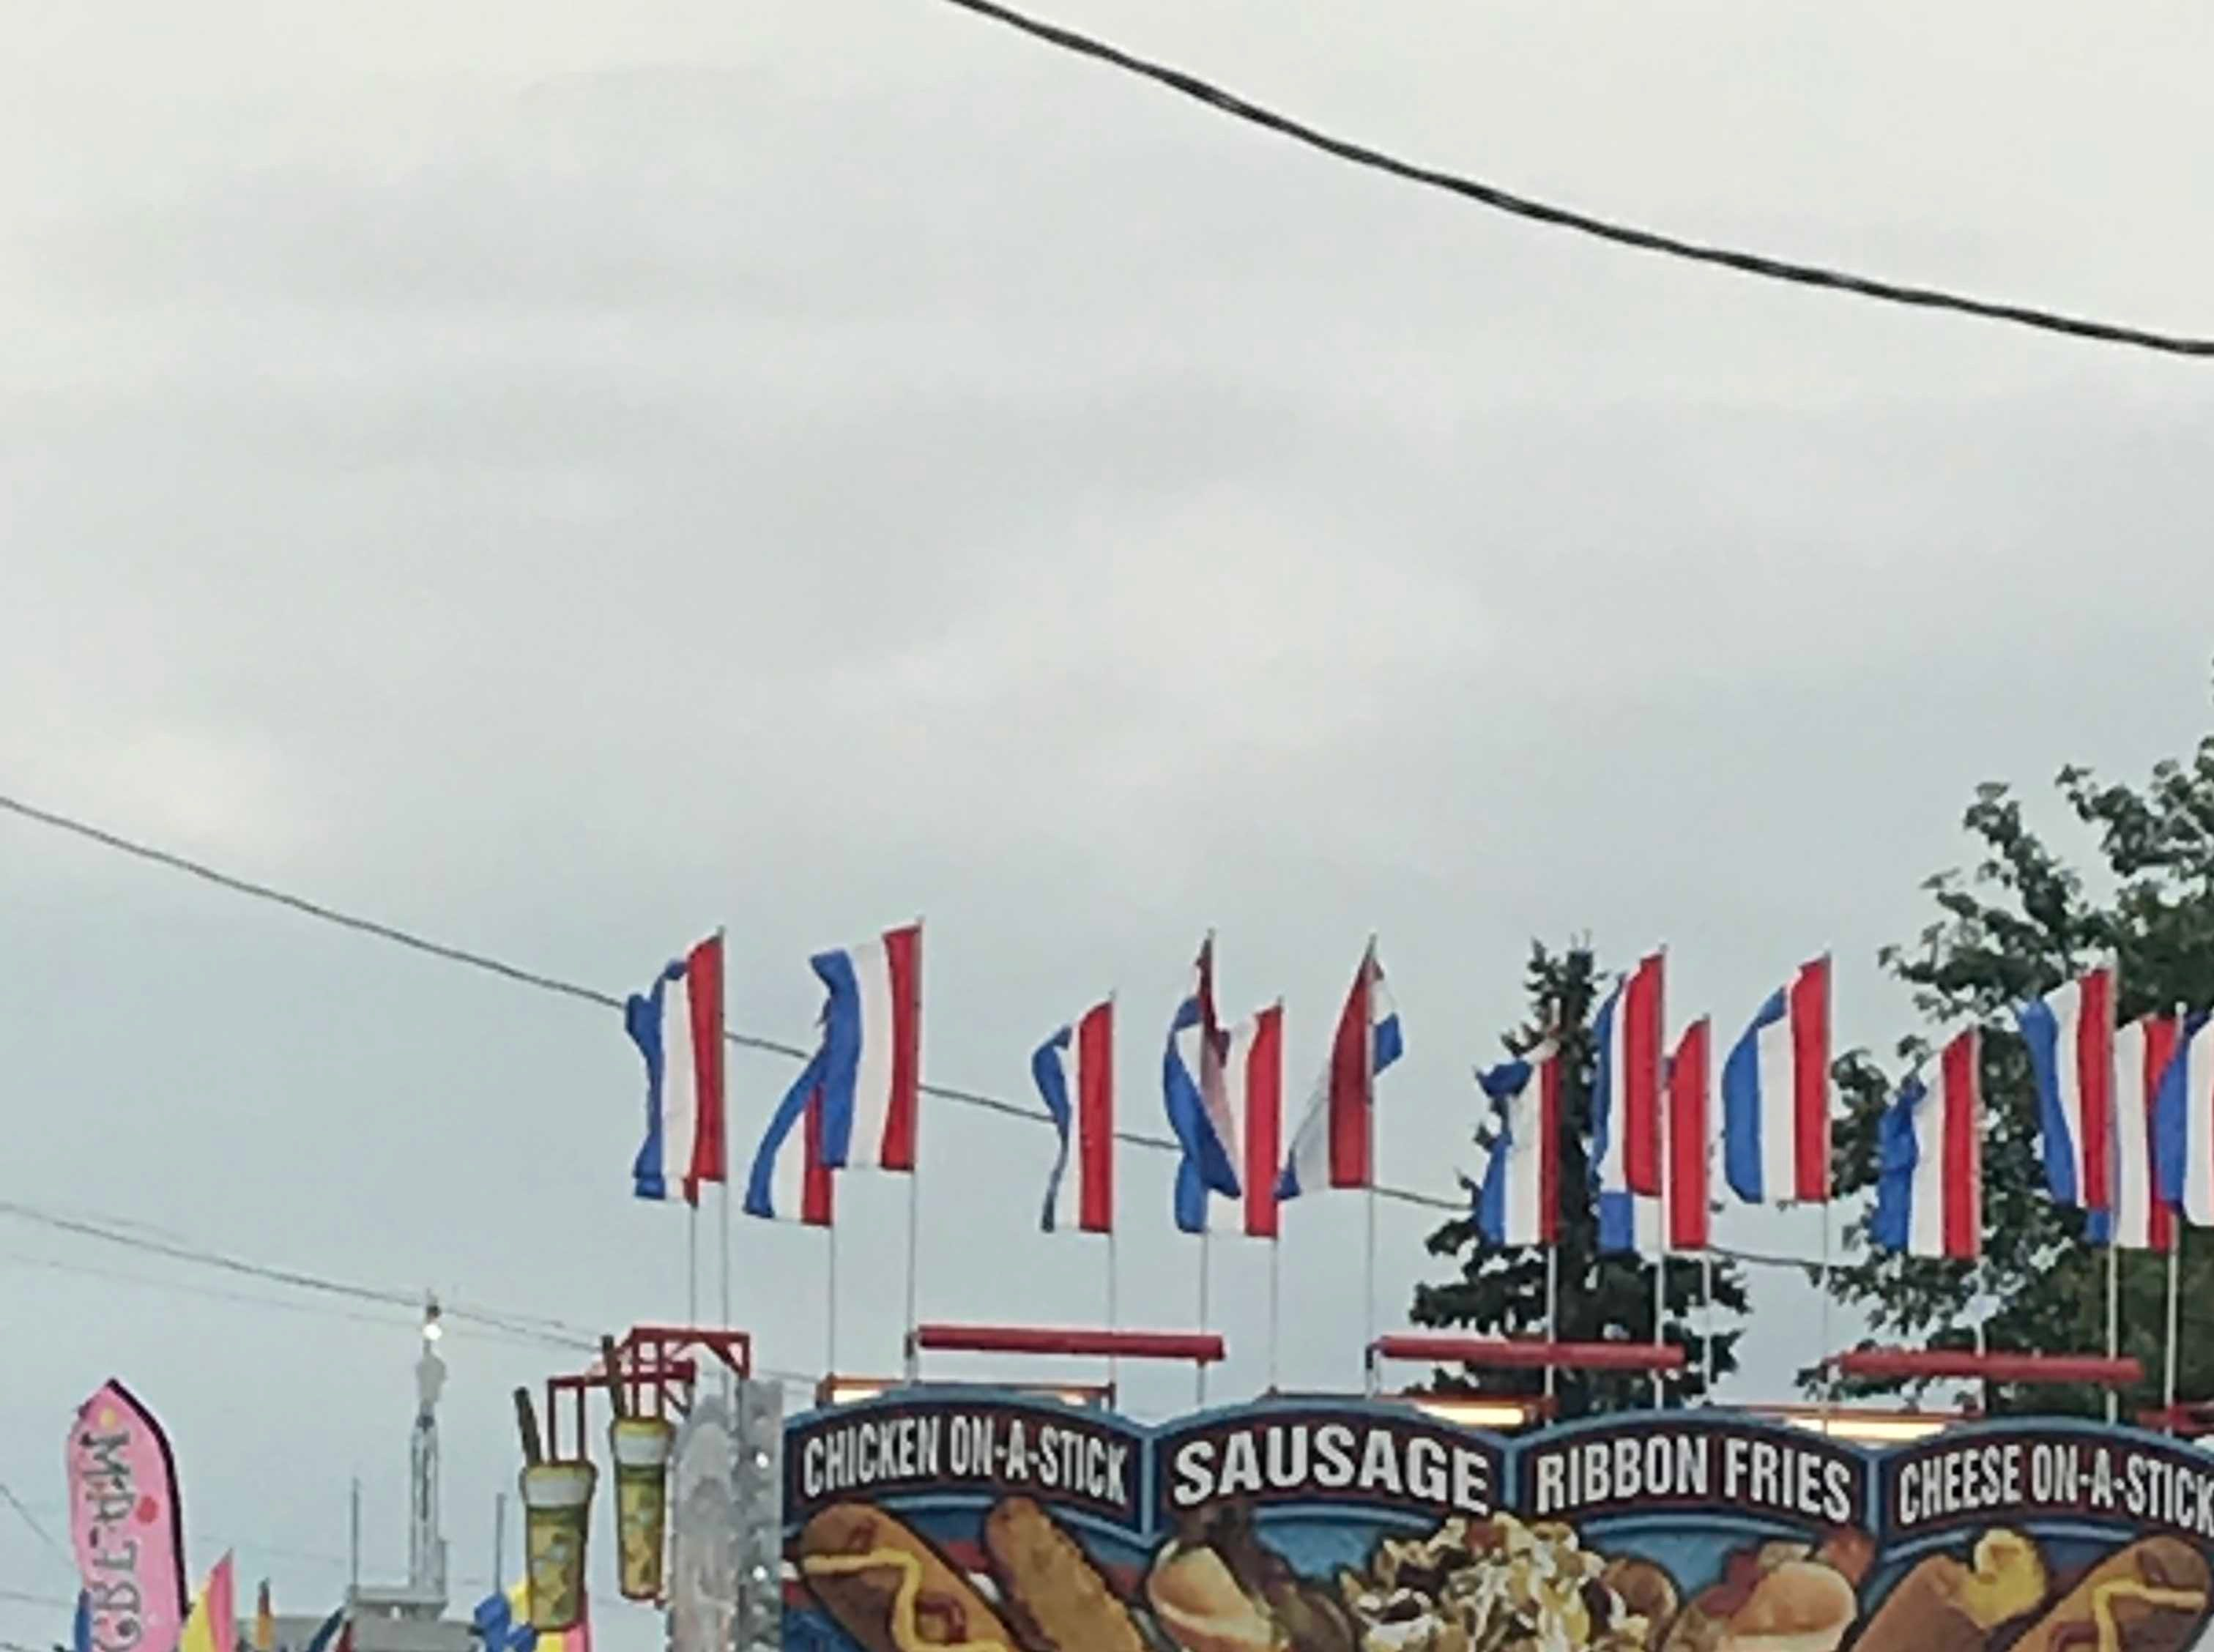 Vendors open their windows as the Manitowoc County Fair opens on its first night Tuesday.